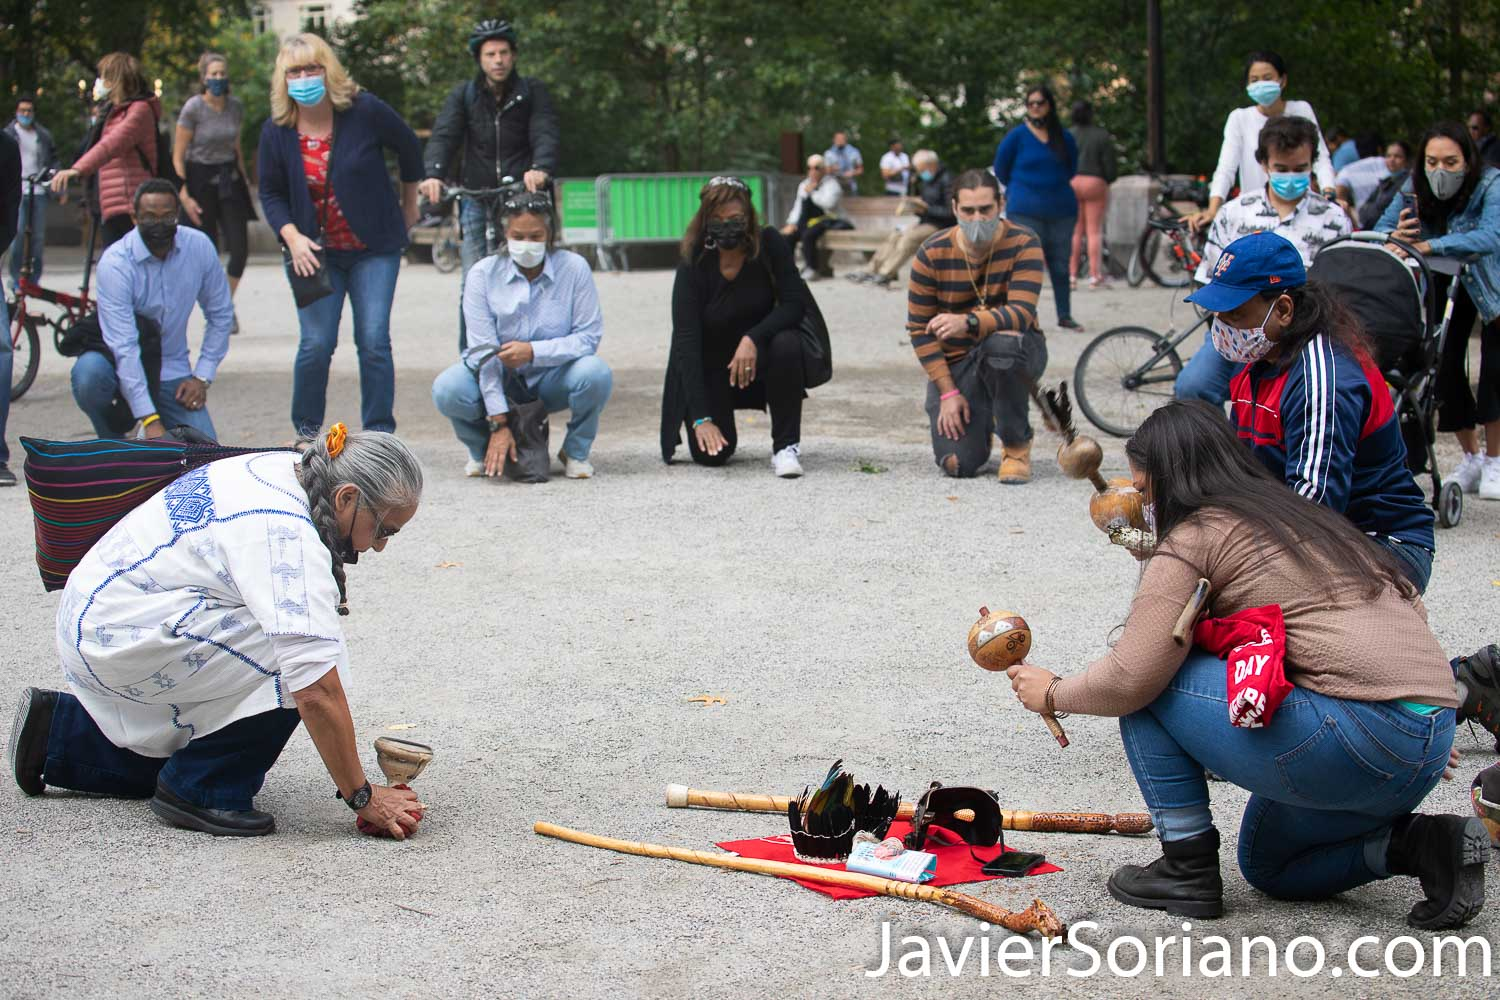 Sunday, October 11, 2020. Manhattan, New York City - 13th Annual Indigenous Day of Remembrance. Instead of celebrating Día de la Raza or Columbus Day, we celebrate Indigenous Peoples' Day. Photo by Javier Soriano/www.JavierSoriano.com